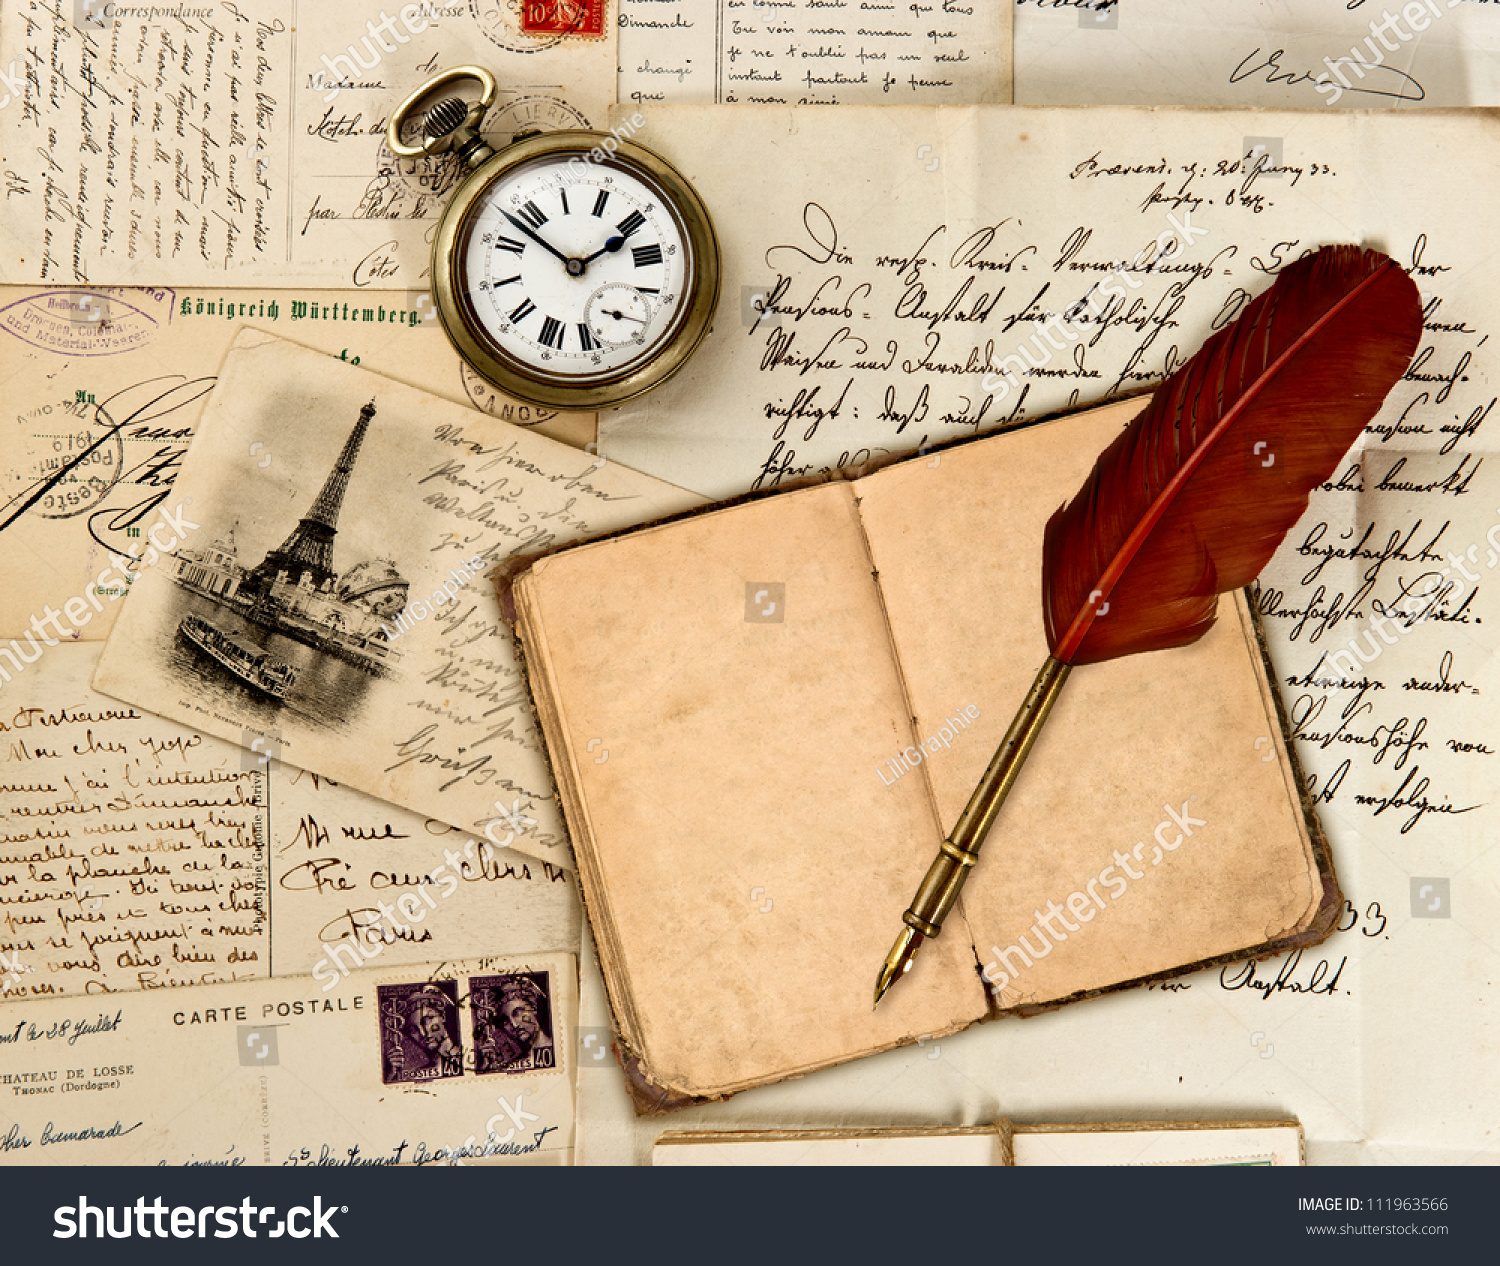 Travel Book Diary Old Letters Post Cards And Feather Quill Nostalgic Vintage Background